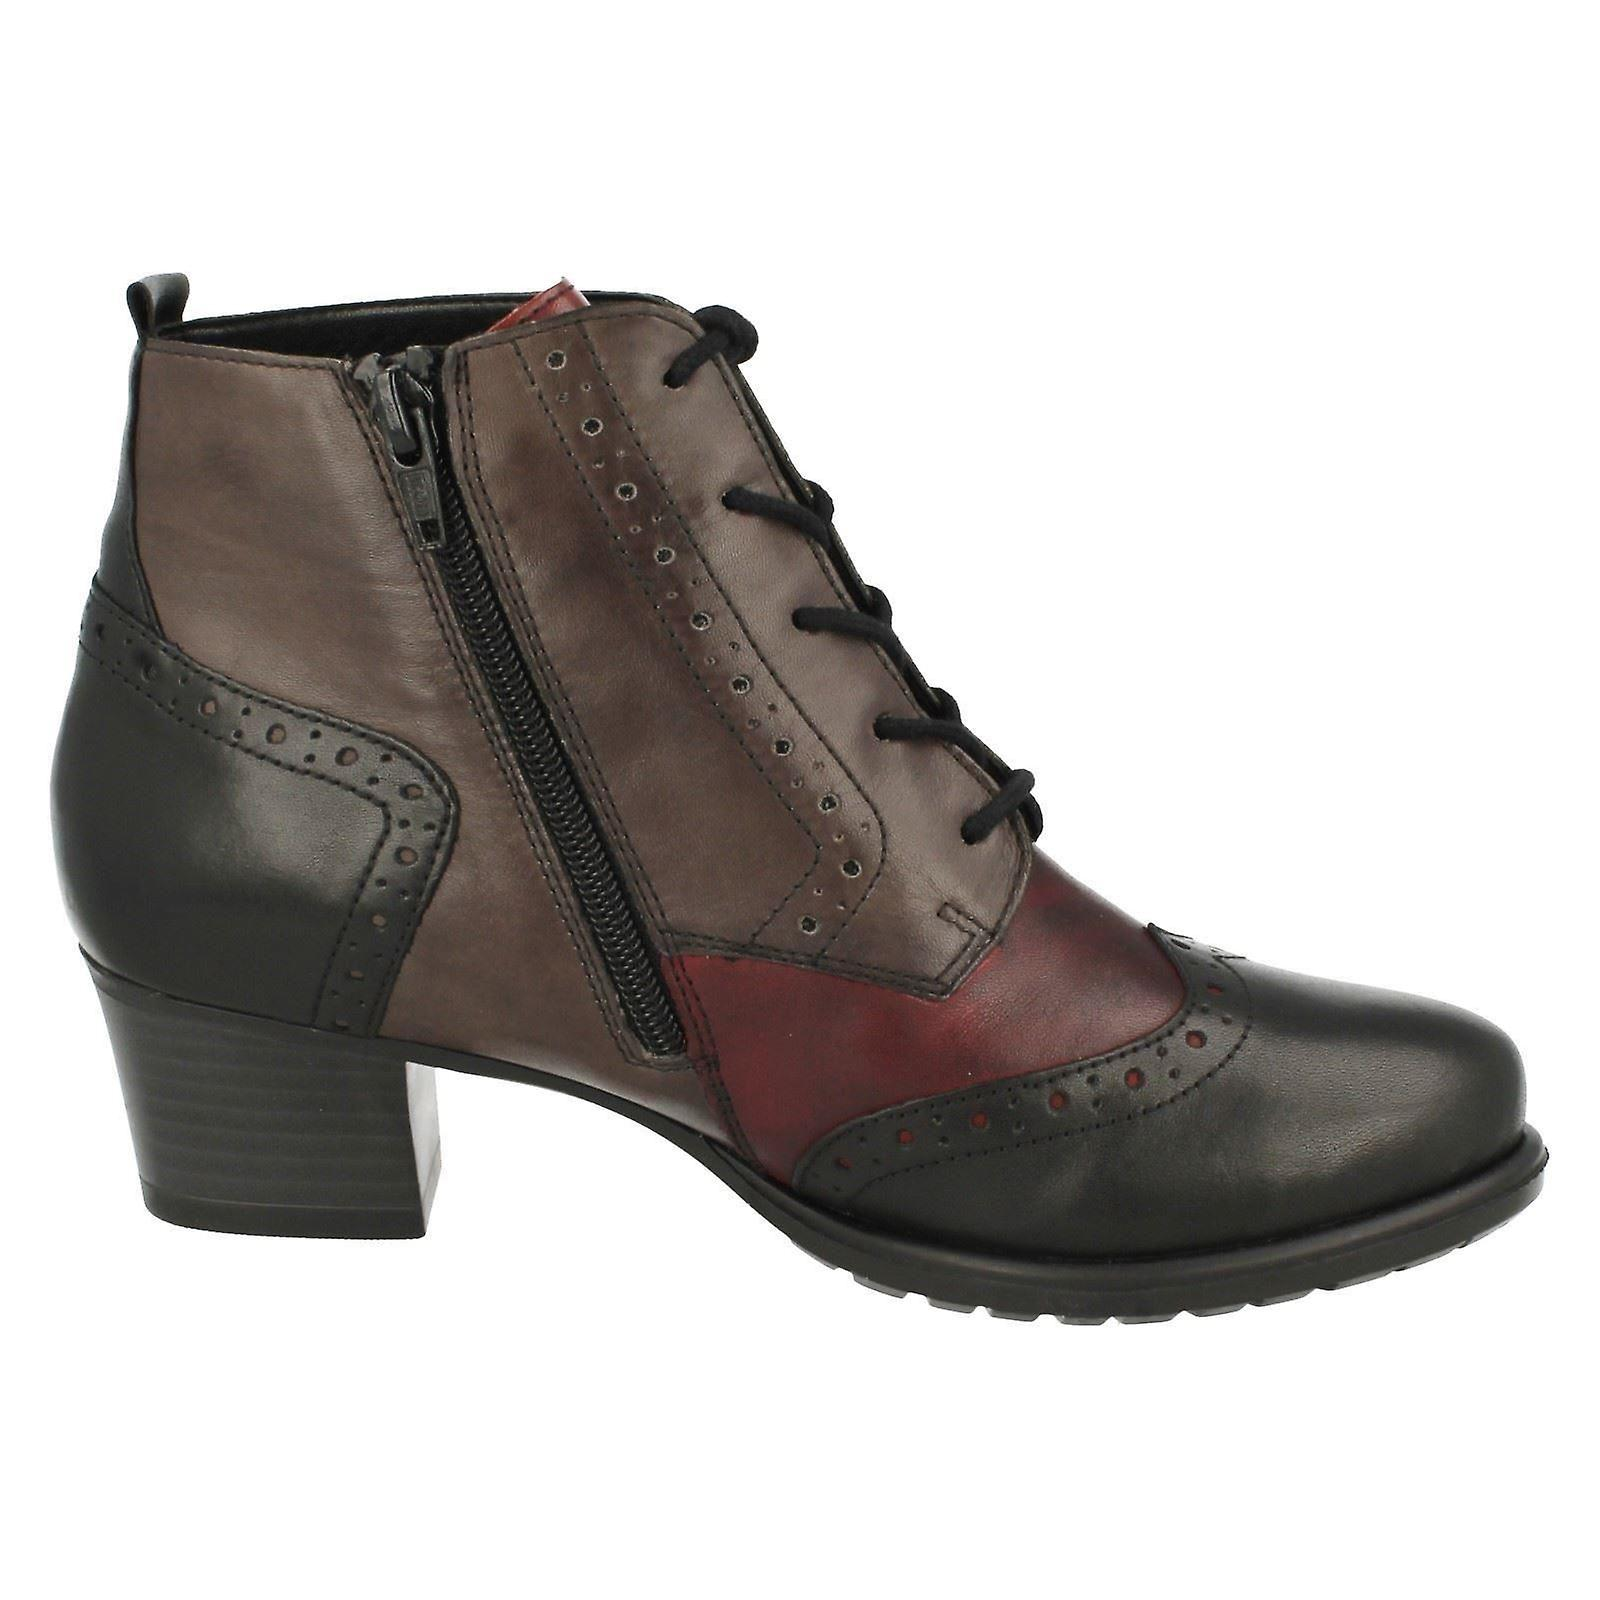 Mesdames Remonte Brogue Style Bottes Warmlined D3180